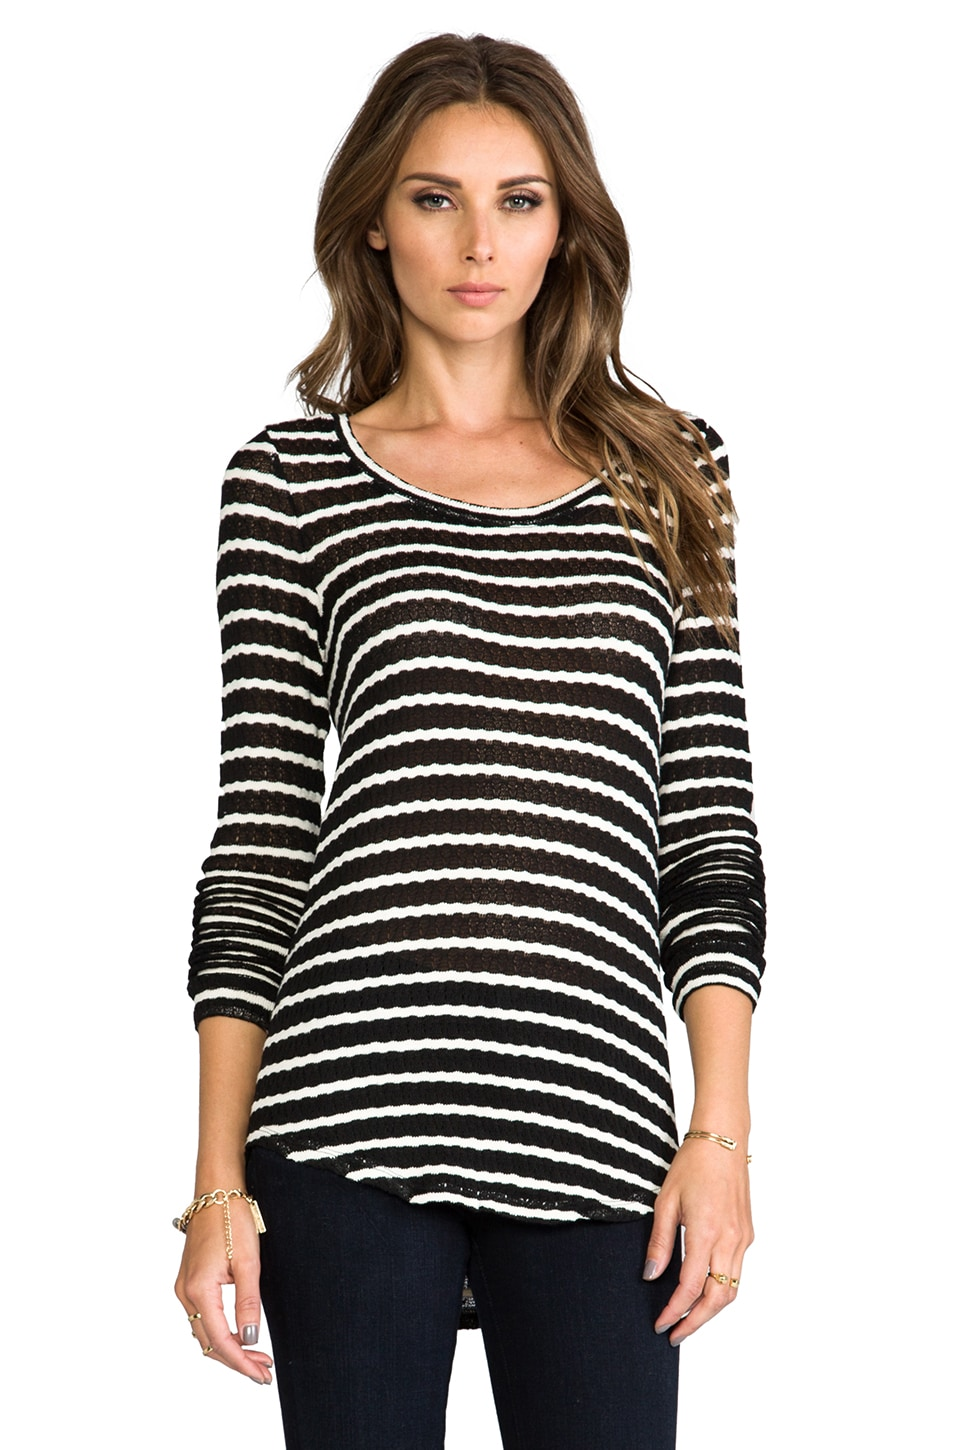 Whetherly Rib Stripe Rosewood Top in Black/Creme